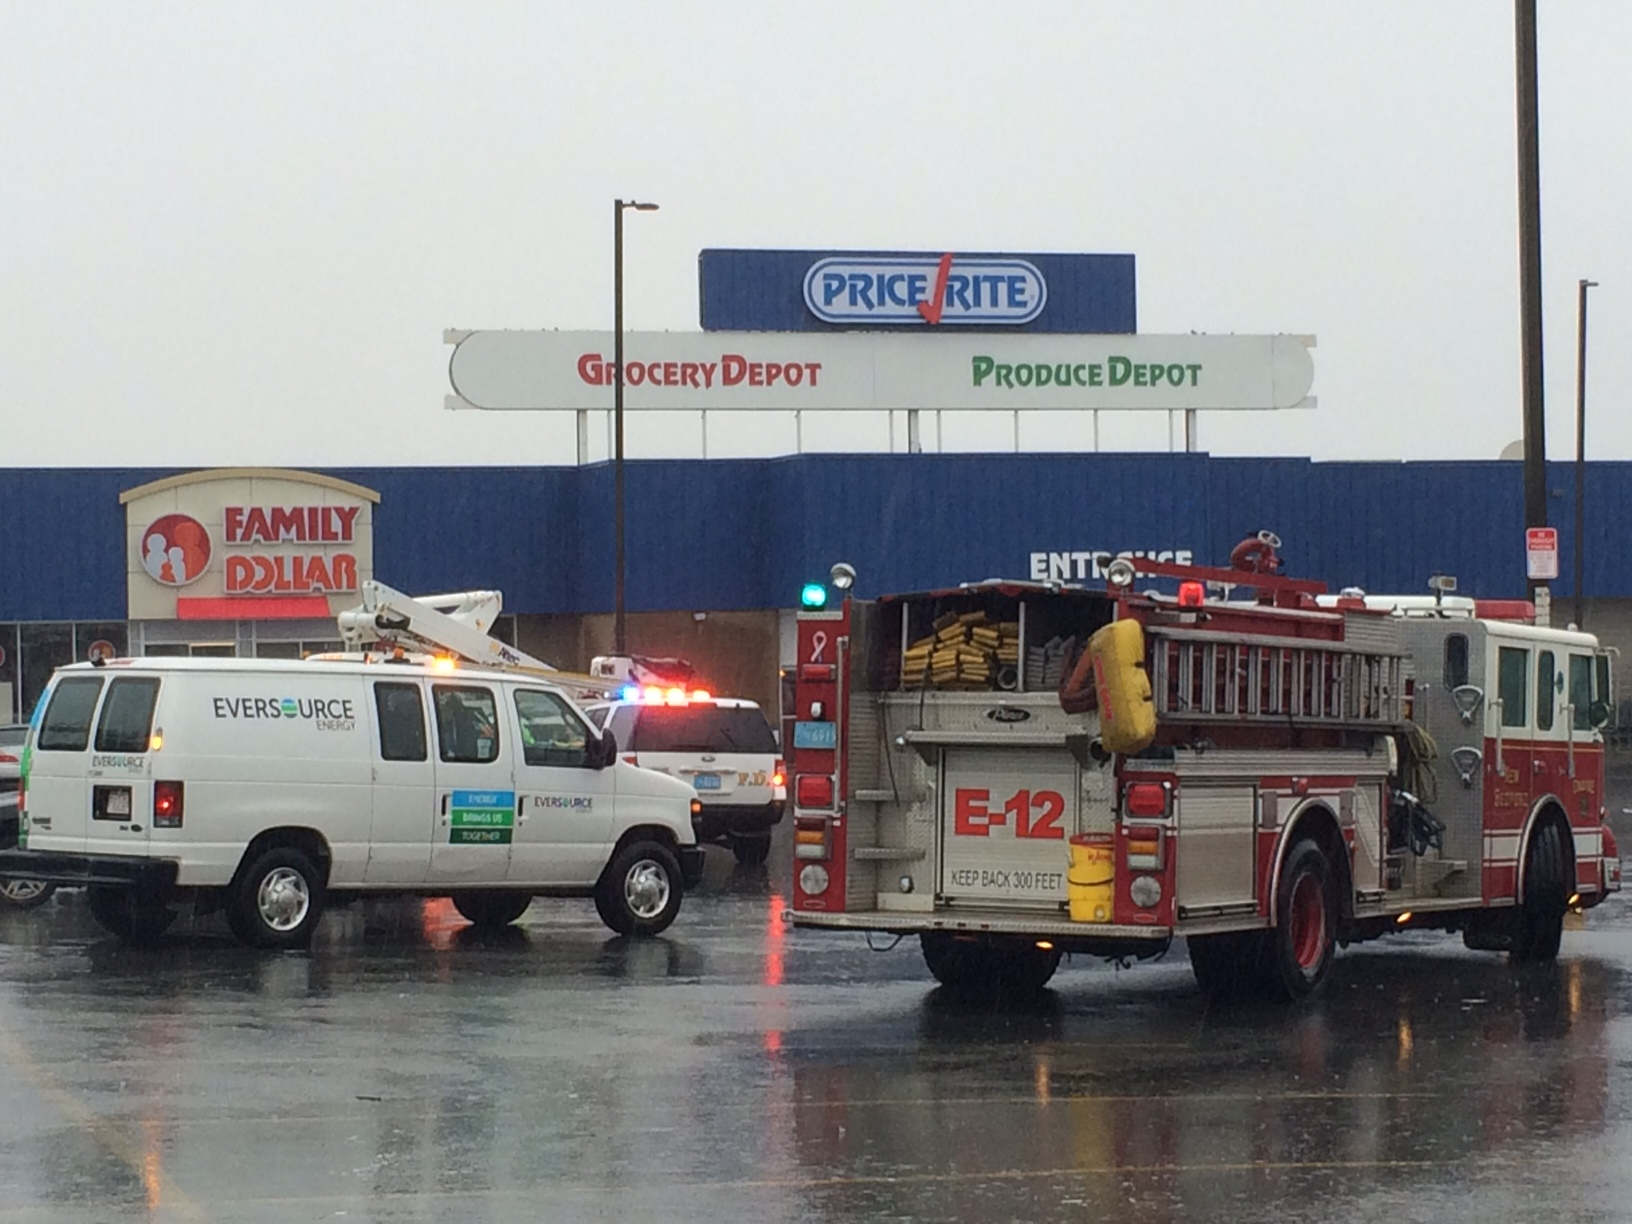 new bedford price rite roof collapse_154771